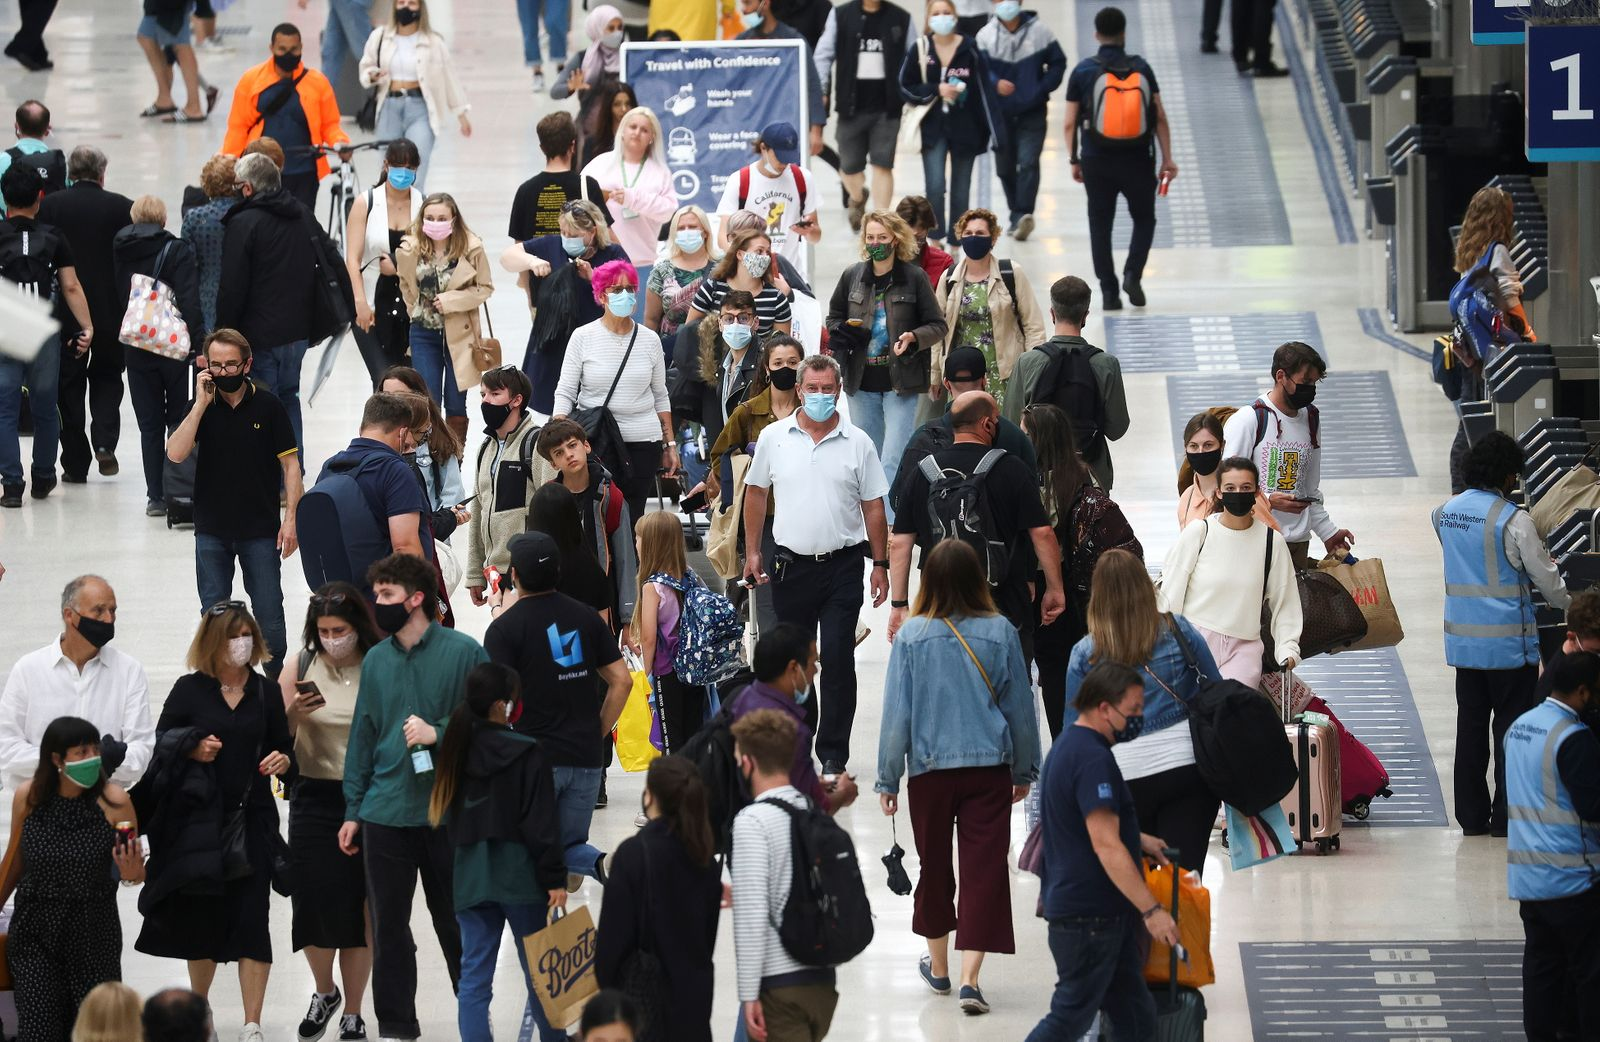 People, some wearing protective face masks, walk through Waterloo Station, amid the coronavirus disease (COVID-19) pandemic, in London